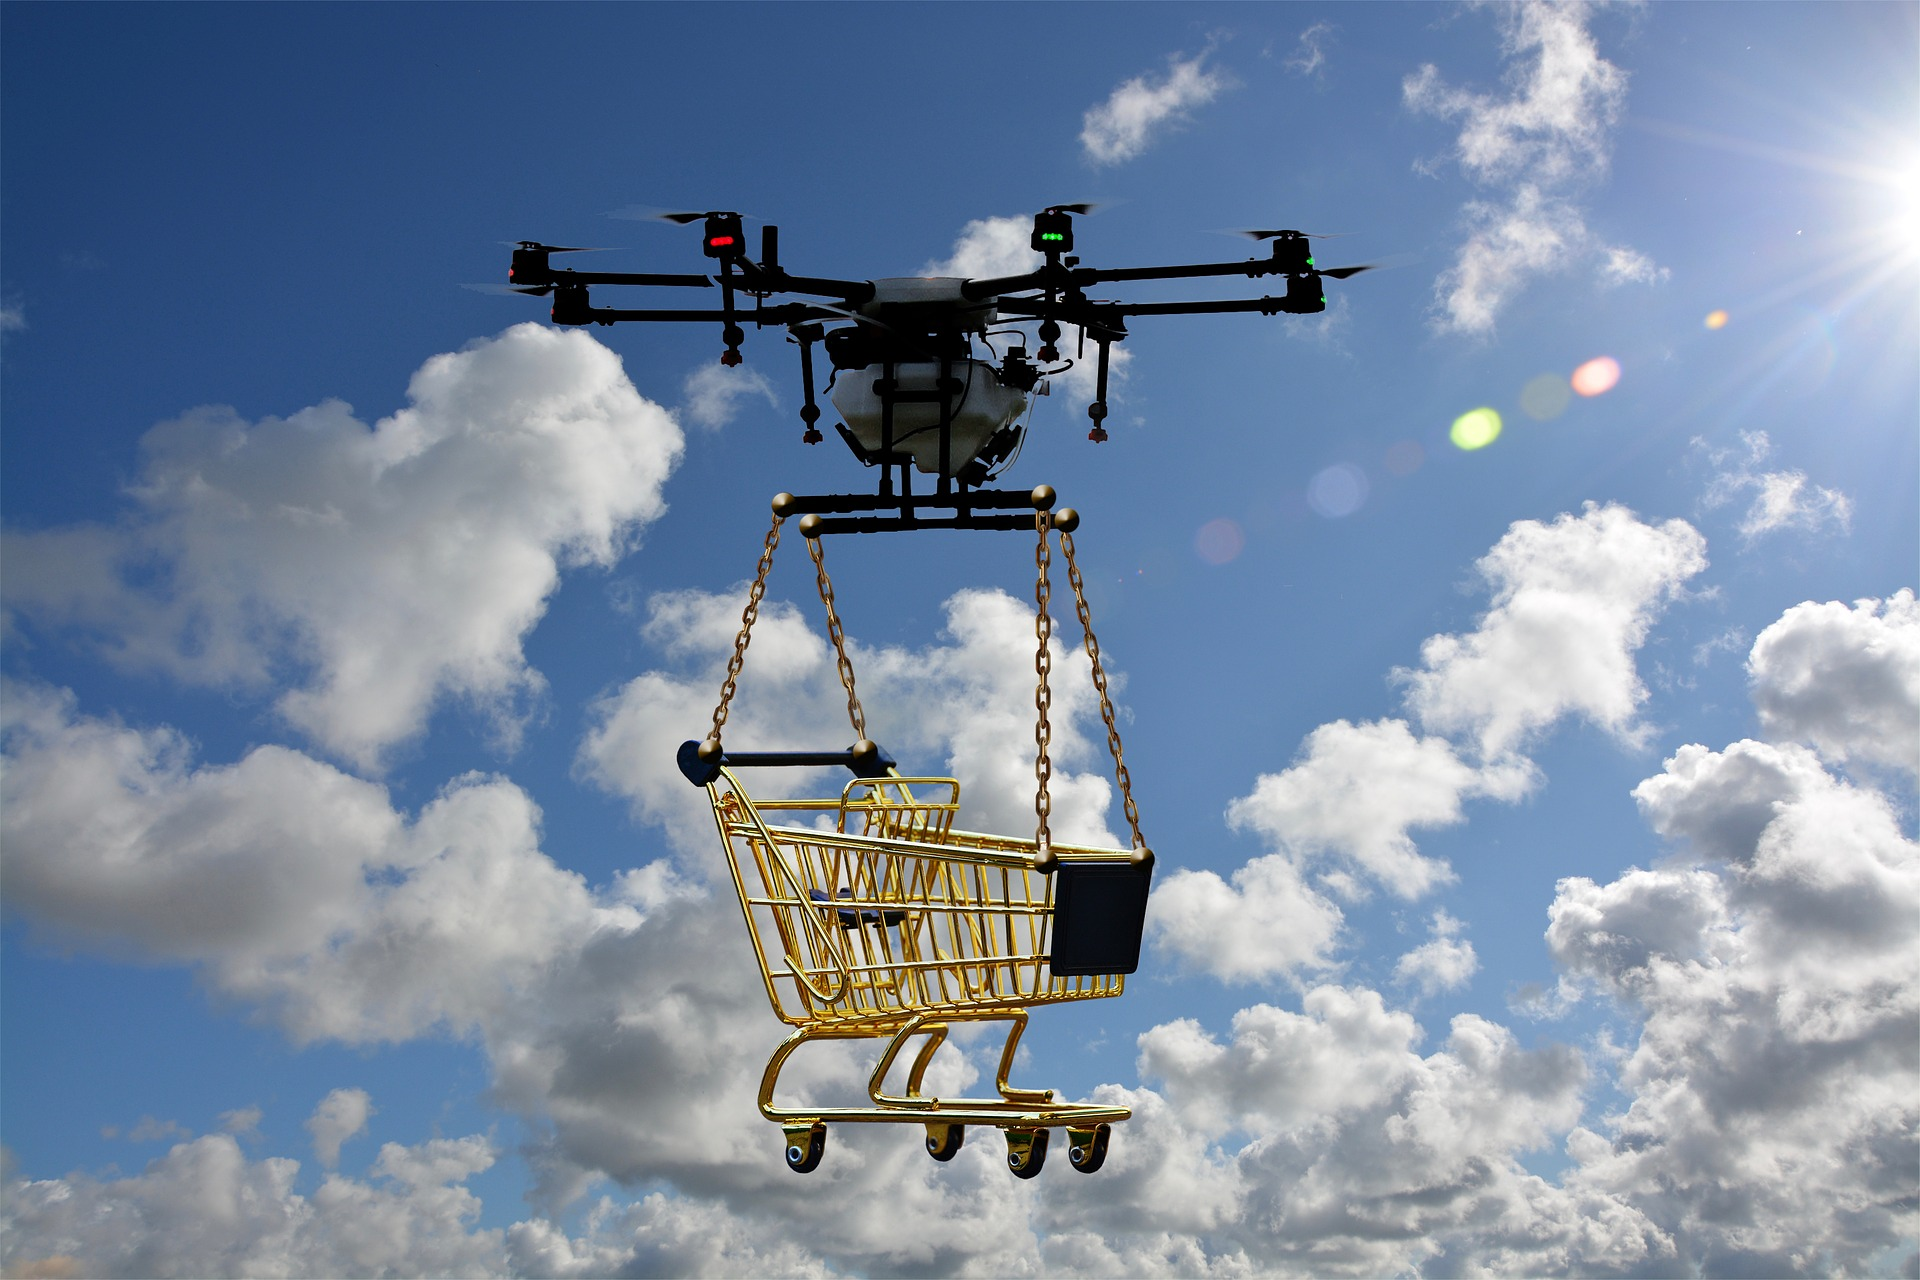 Use blockchain to guarantee the reliability of commercial drones | Geek Diary